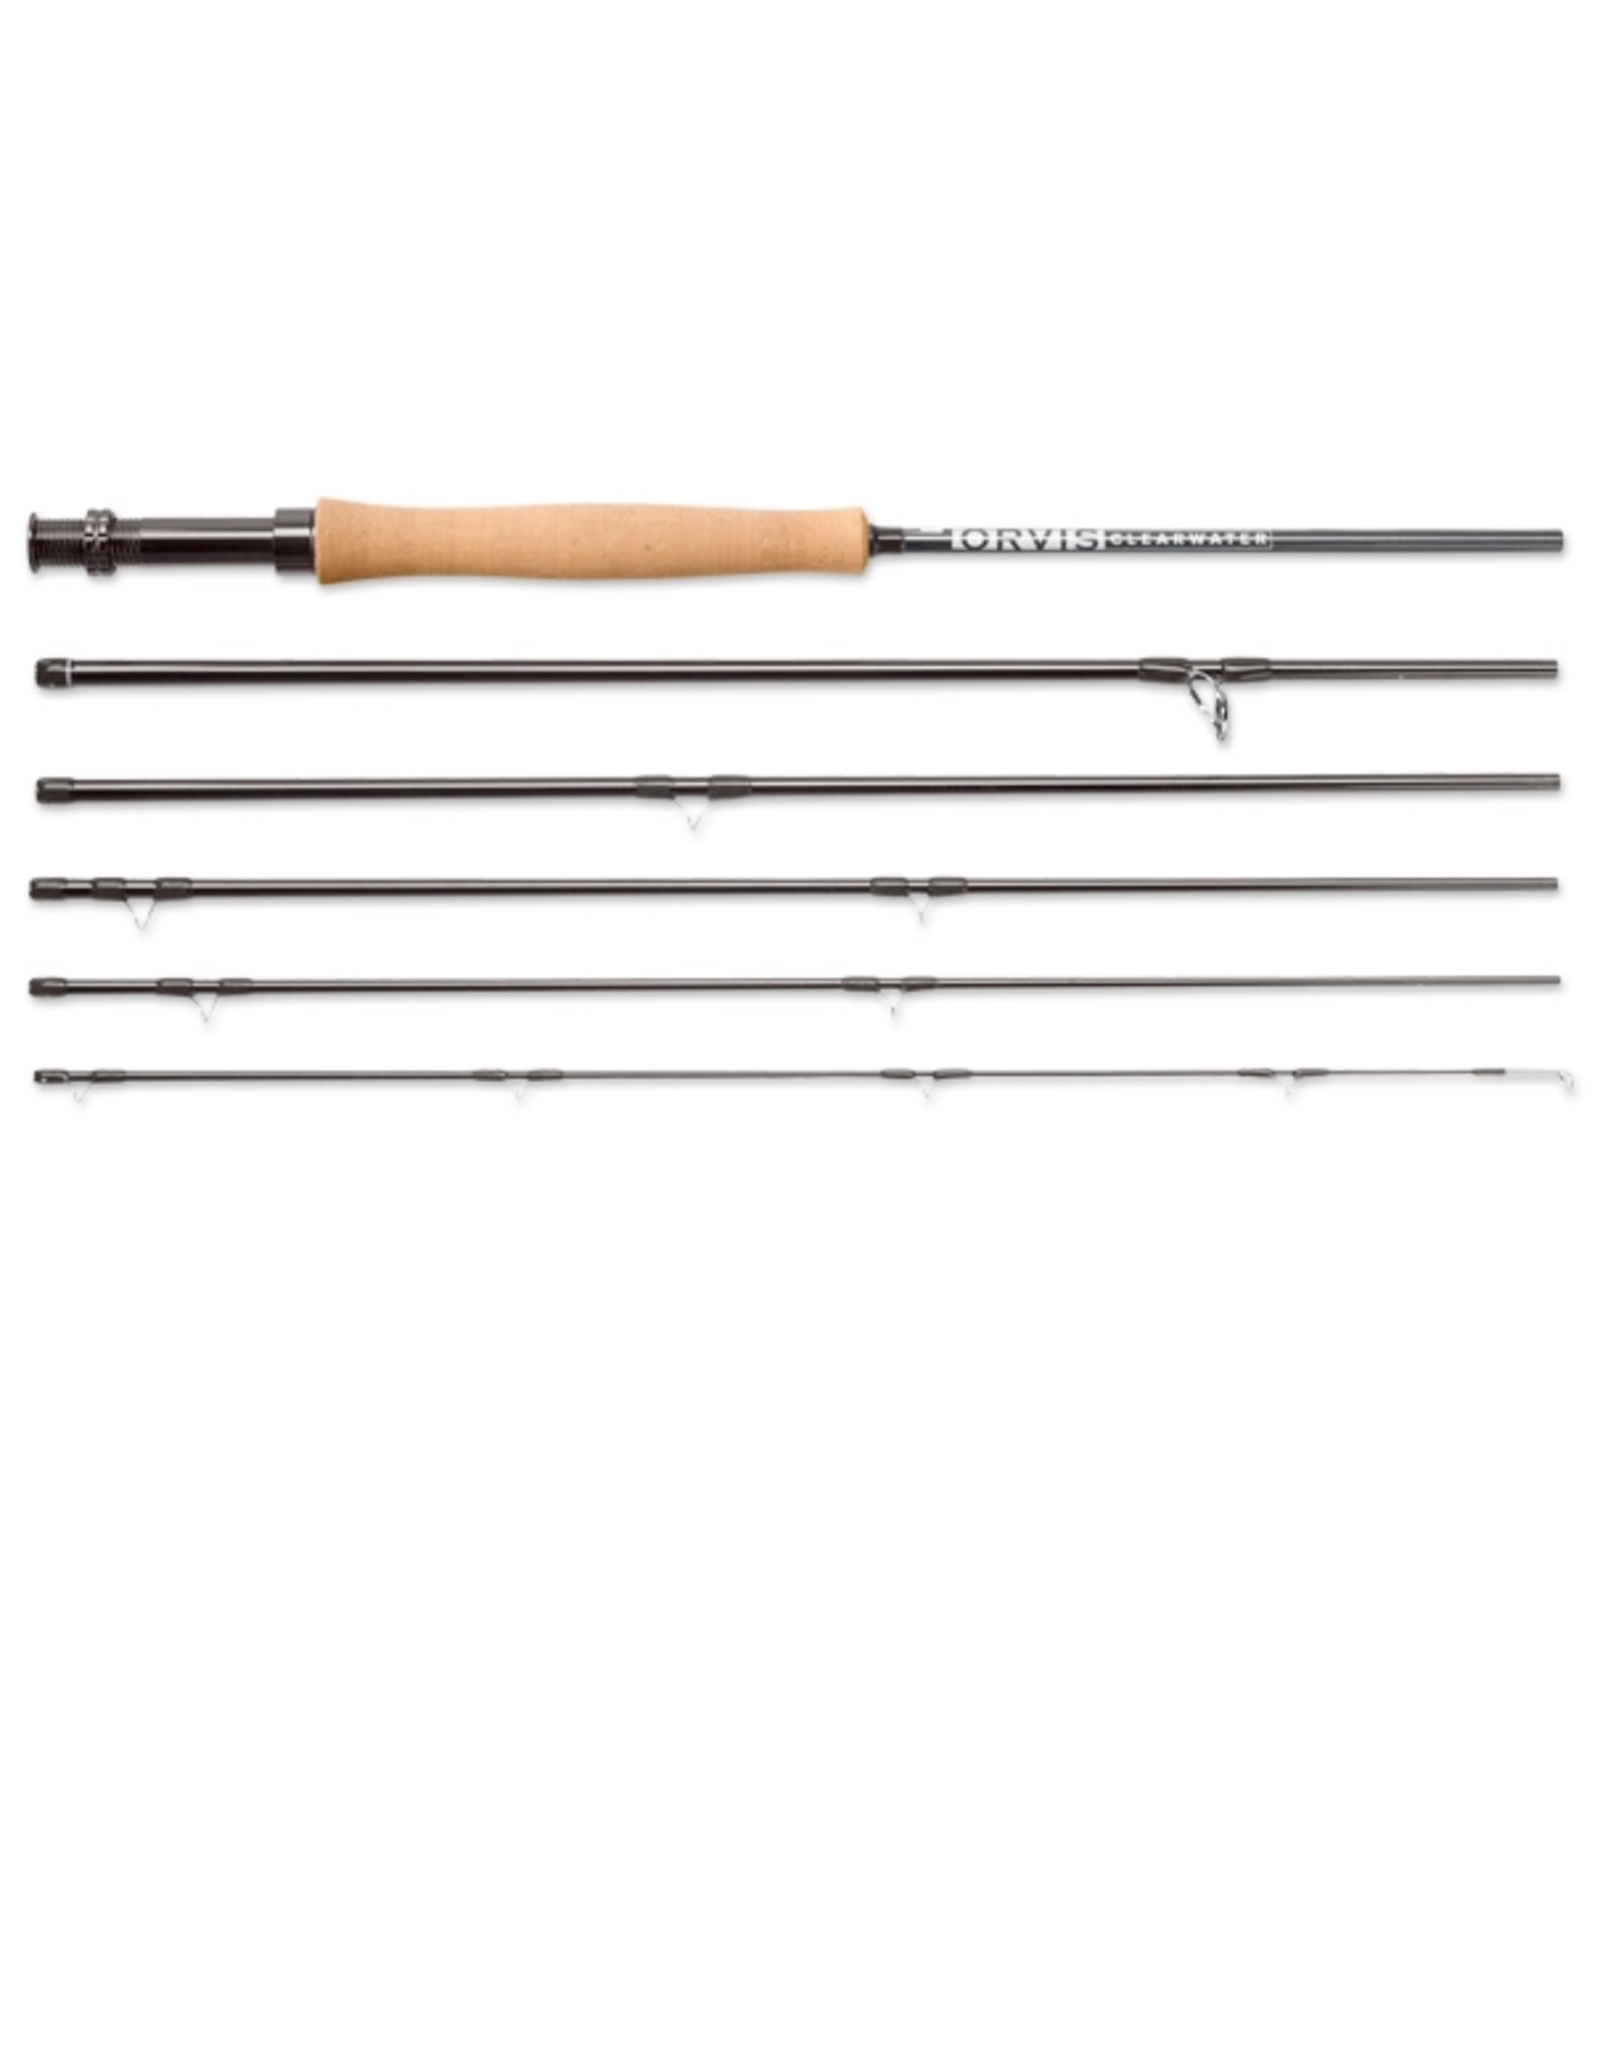 Orvis ORVIS Clearwater 9' 5wt (6 pc) Fly Rod